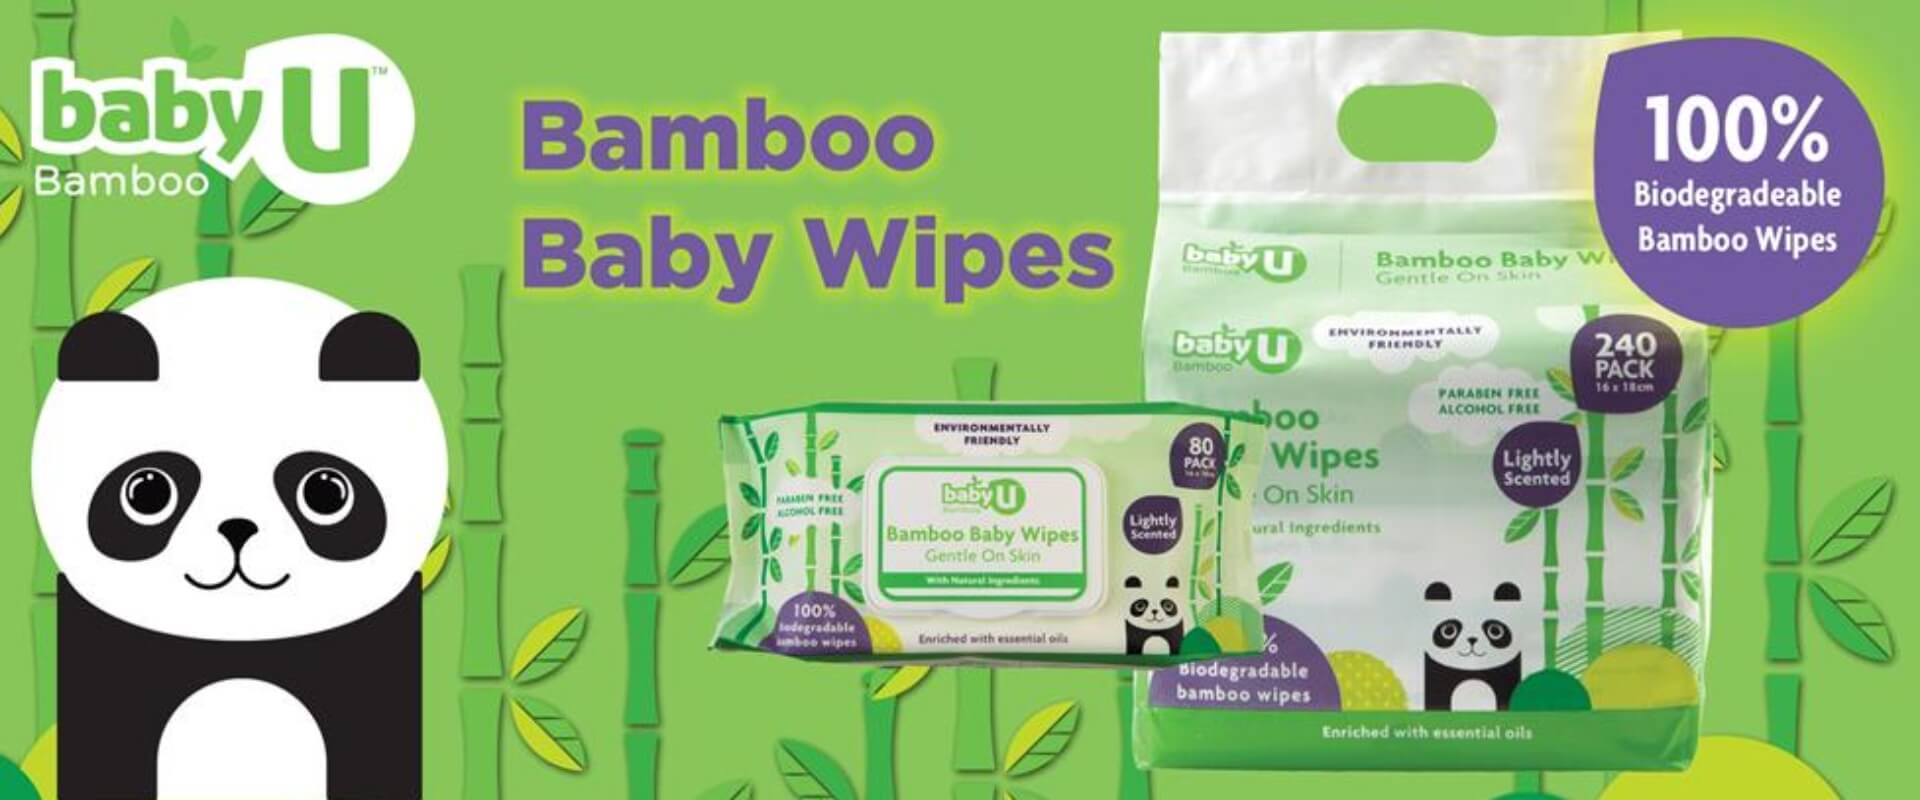 Baby U Bamboo Wipes slider (1)